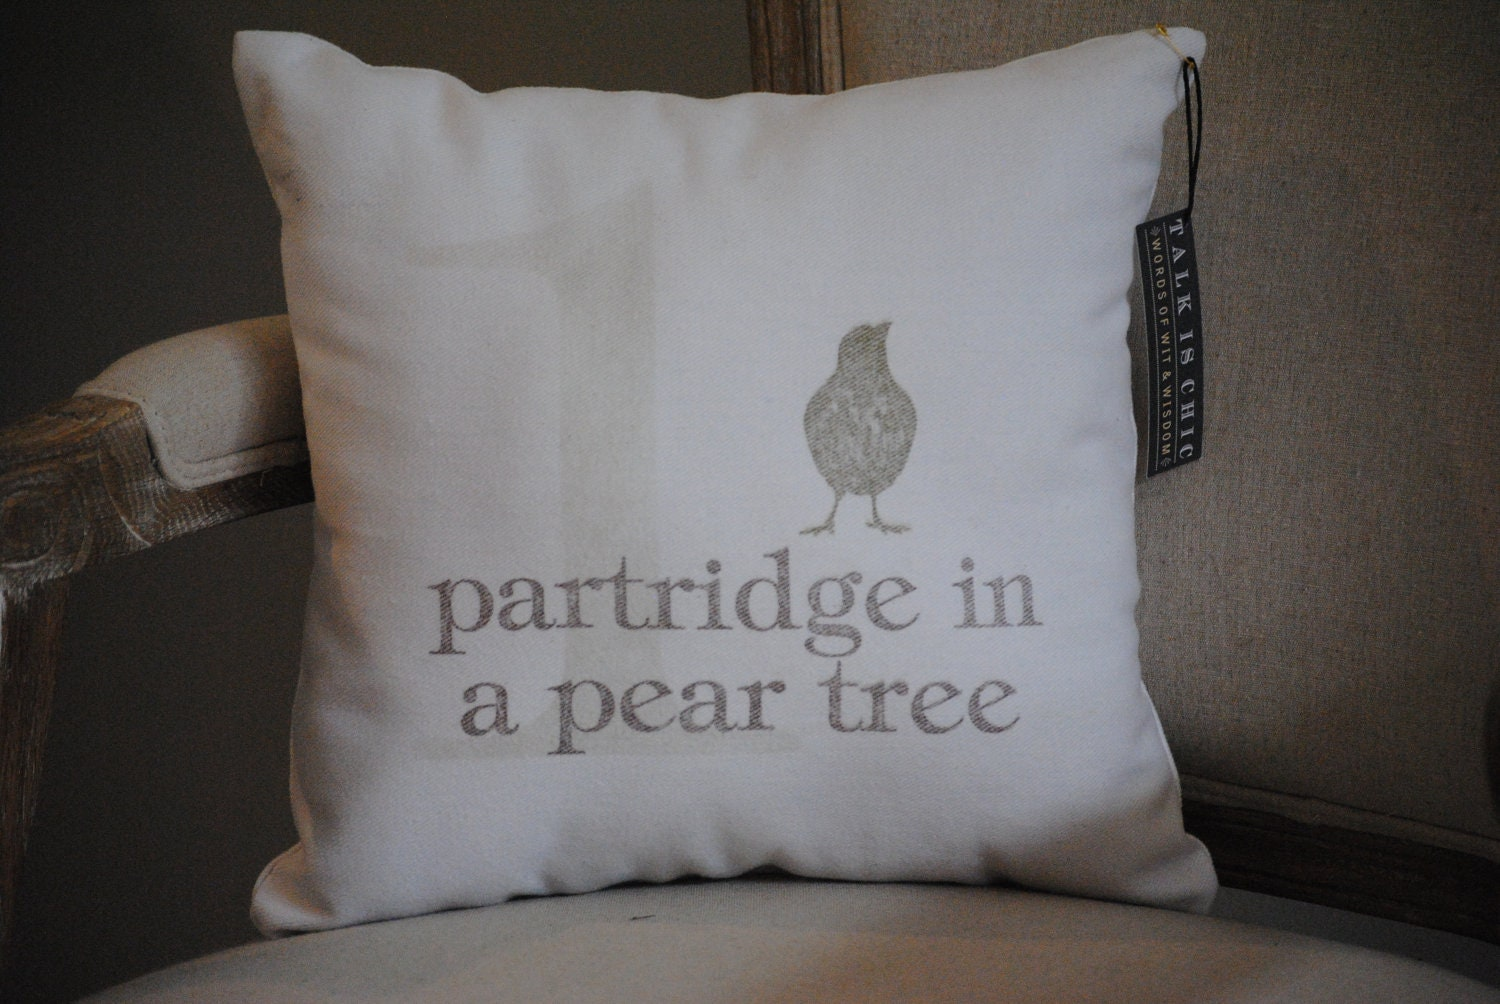 Partridge in a Pear Tree - Pillow - Christmas Decor - Holiday Home Decor